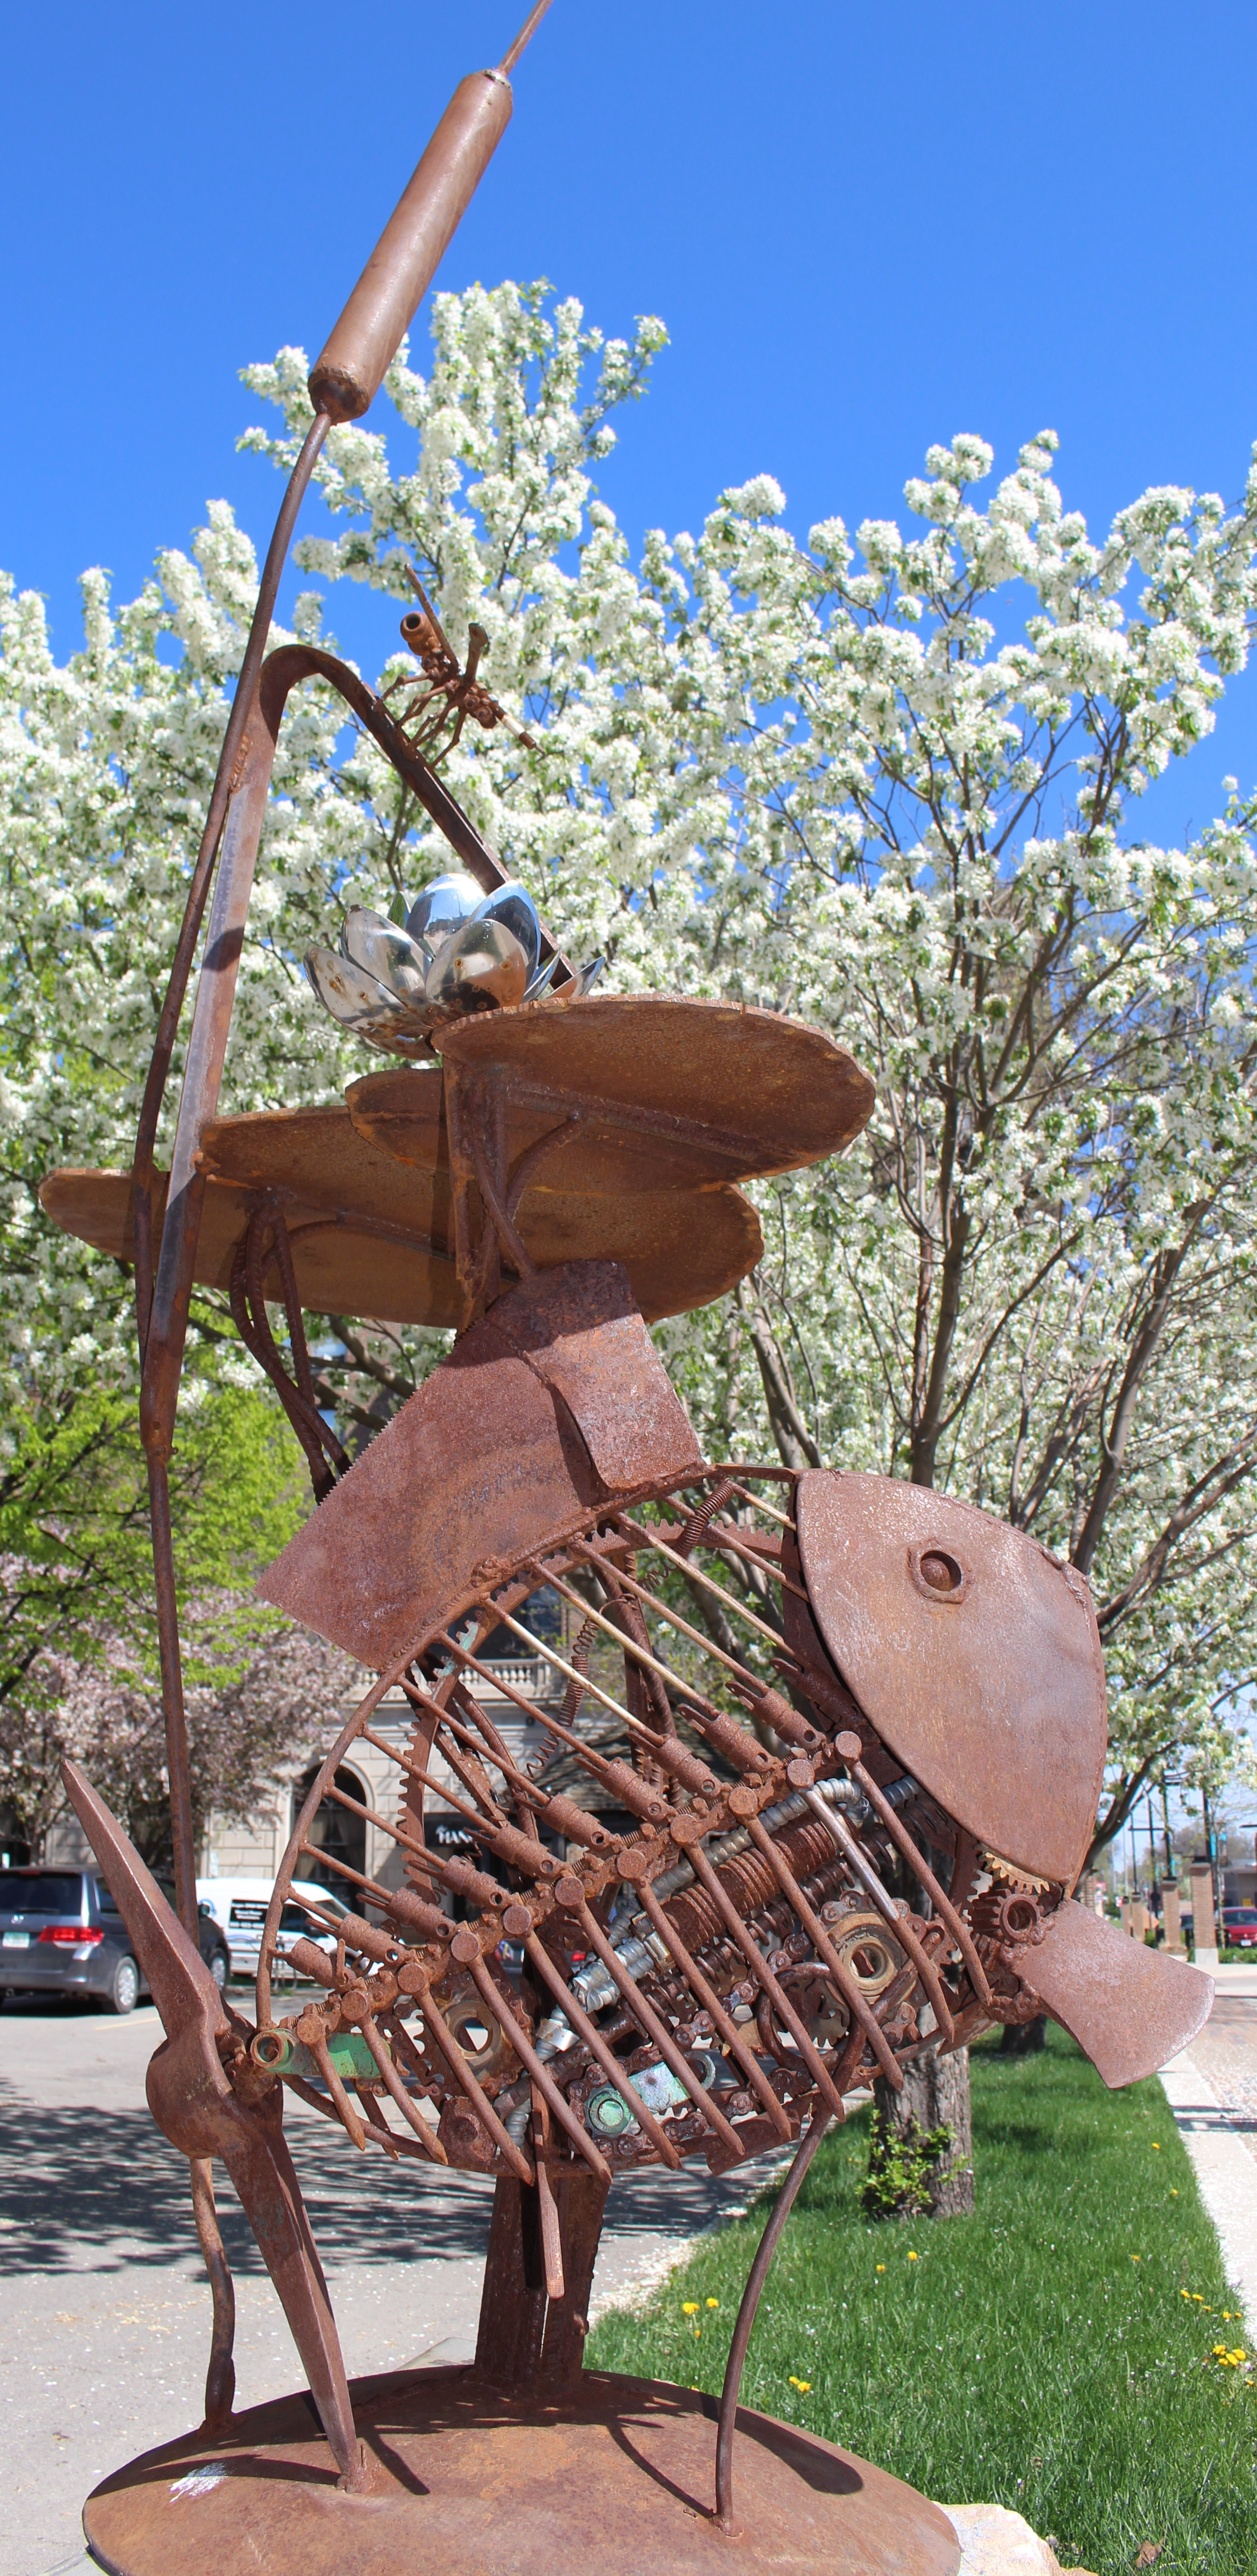 River City Sculptures On Parade